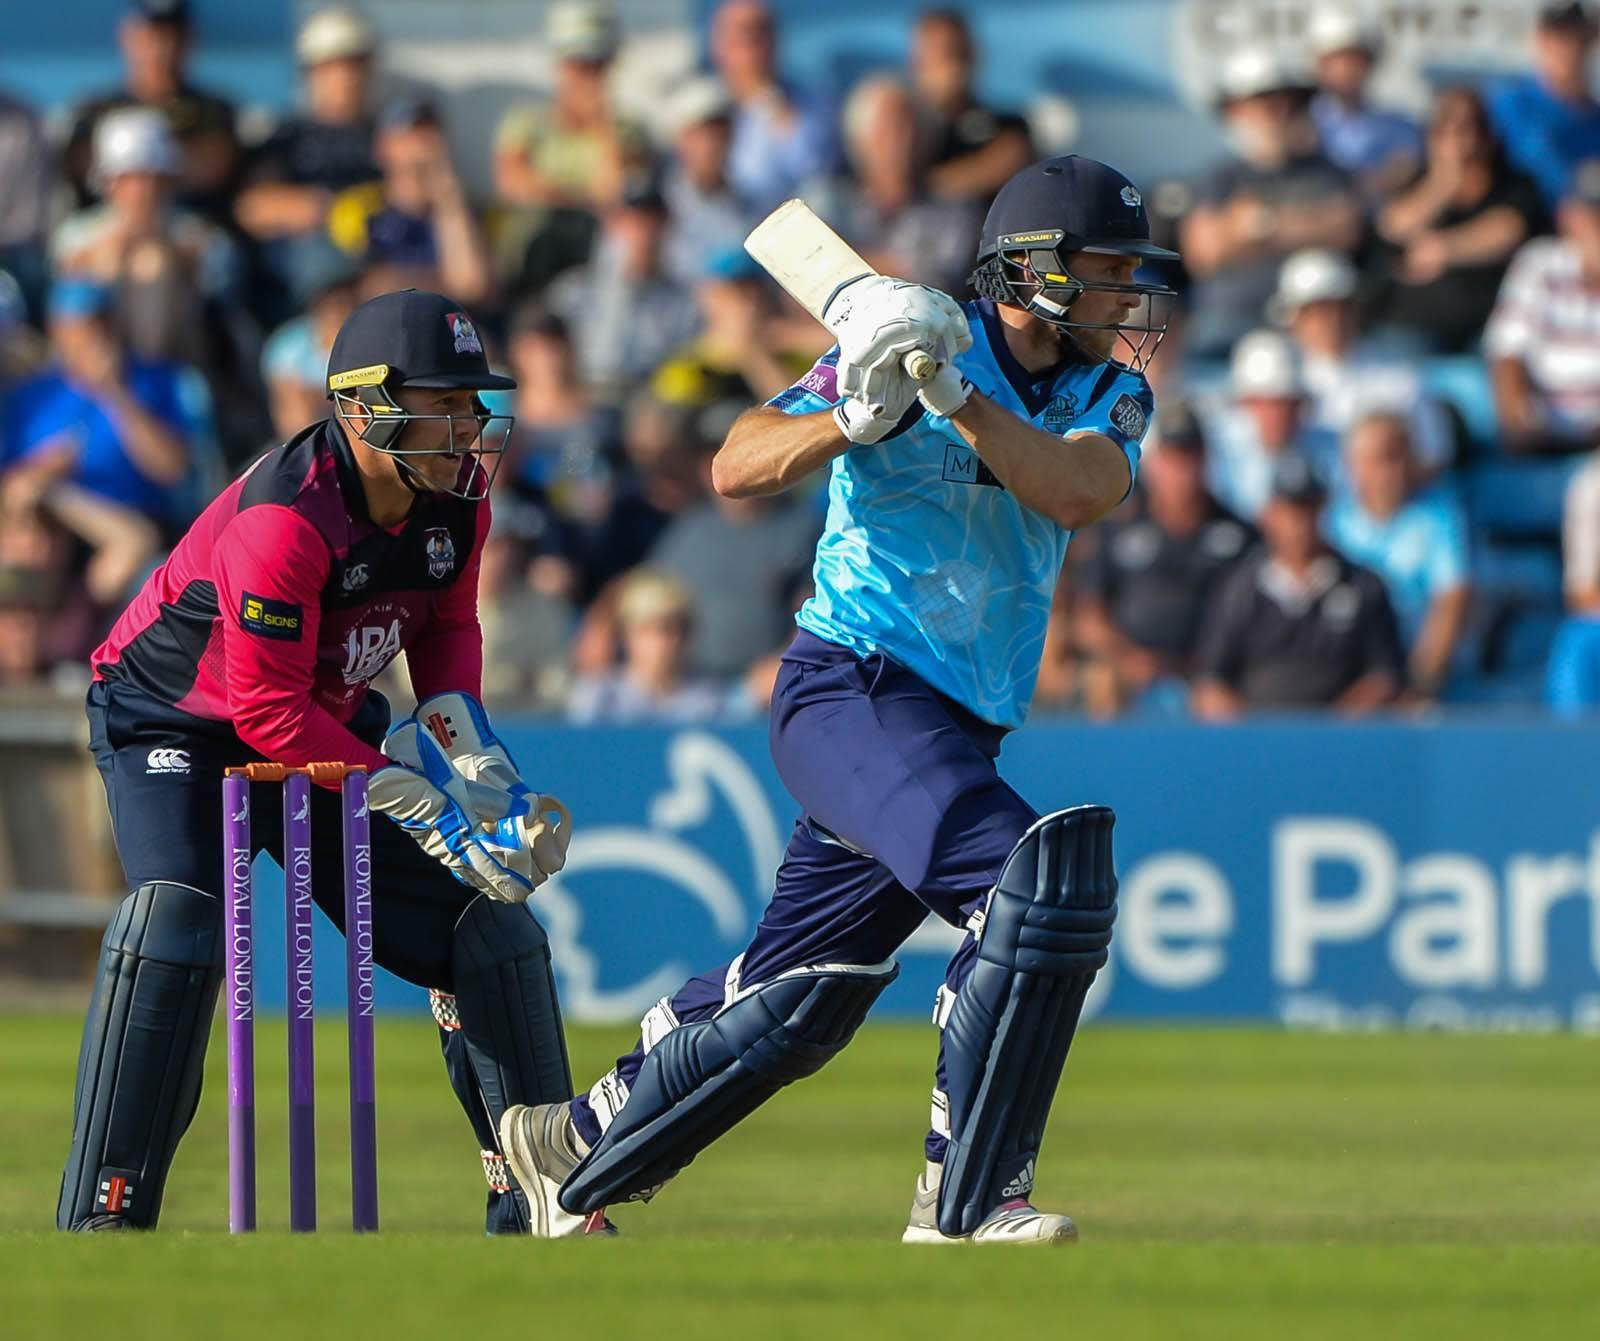 David Willey is one of several top Yorkshire players who will be missing from their quarter-final clash at Essex    Picture: Ray Spencer